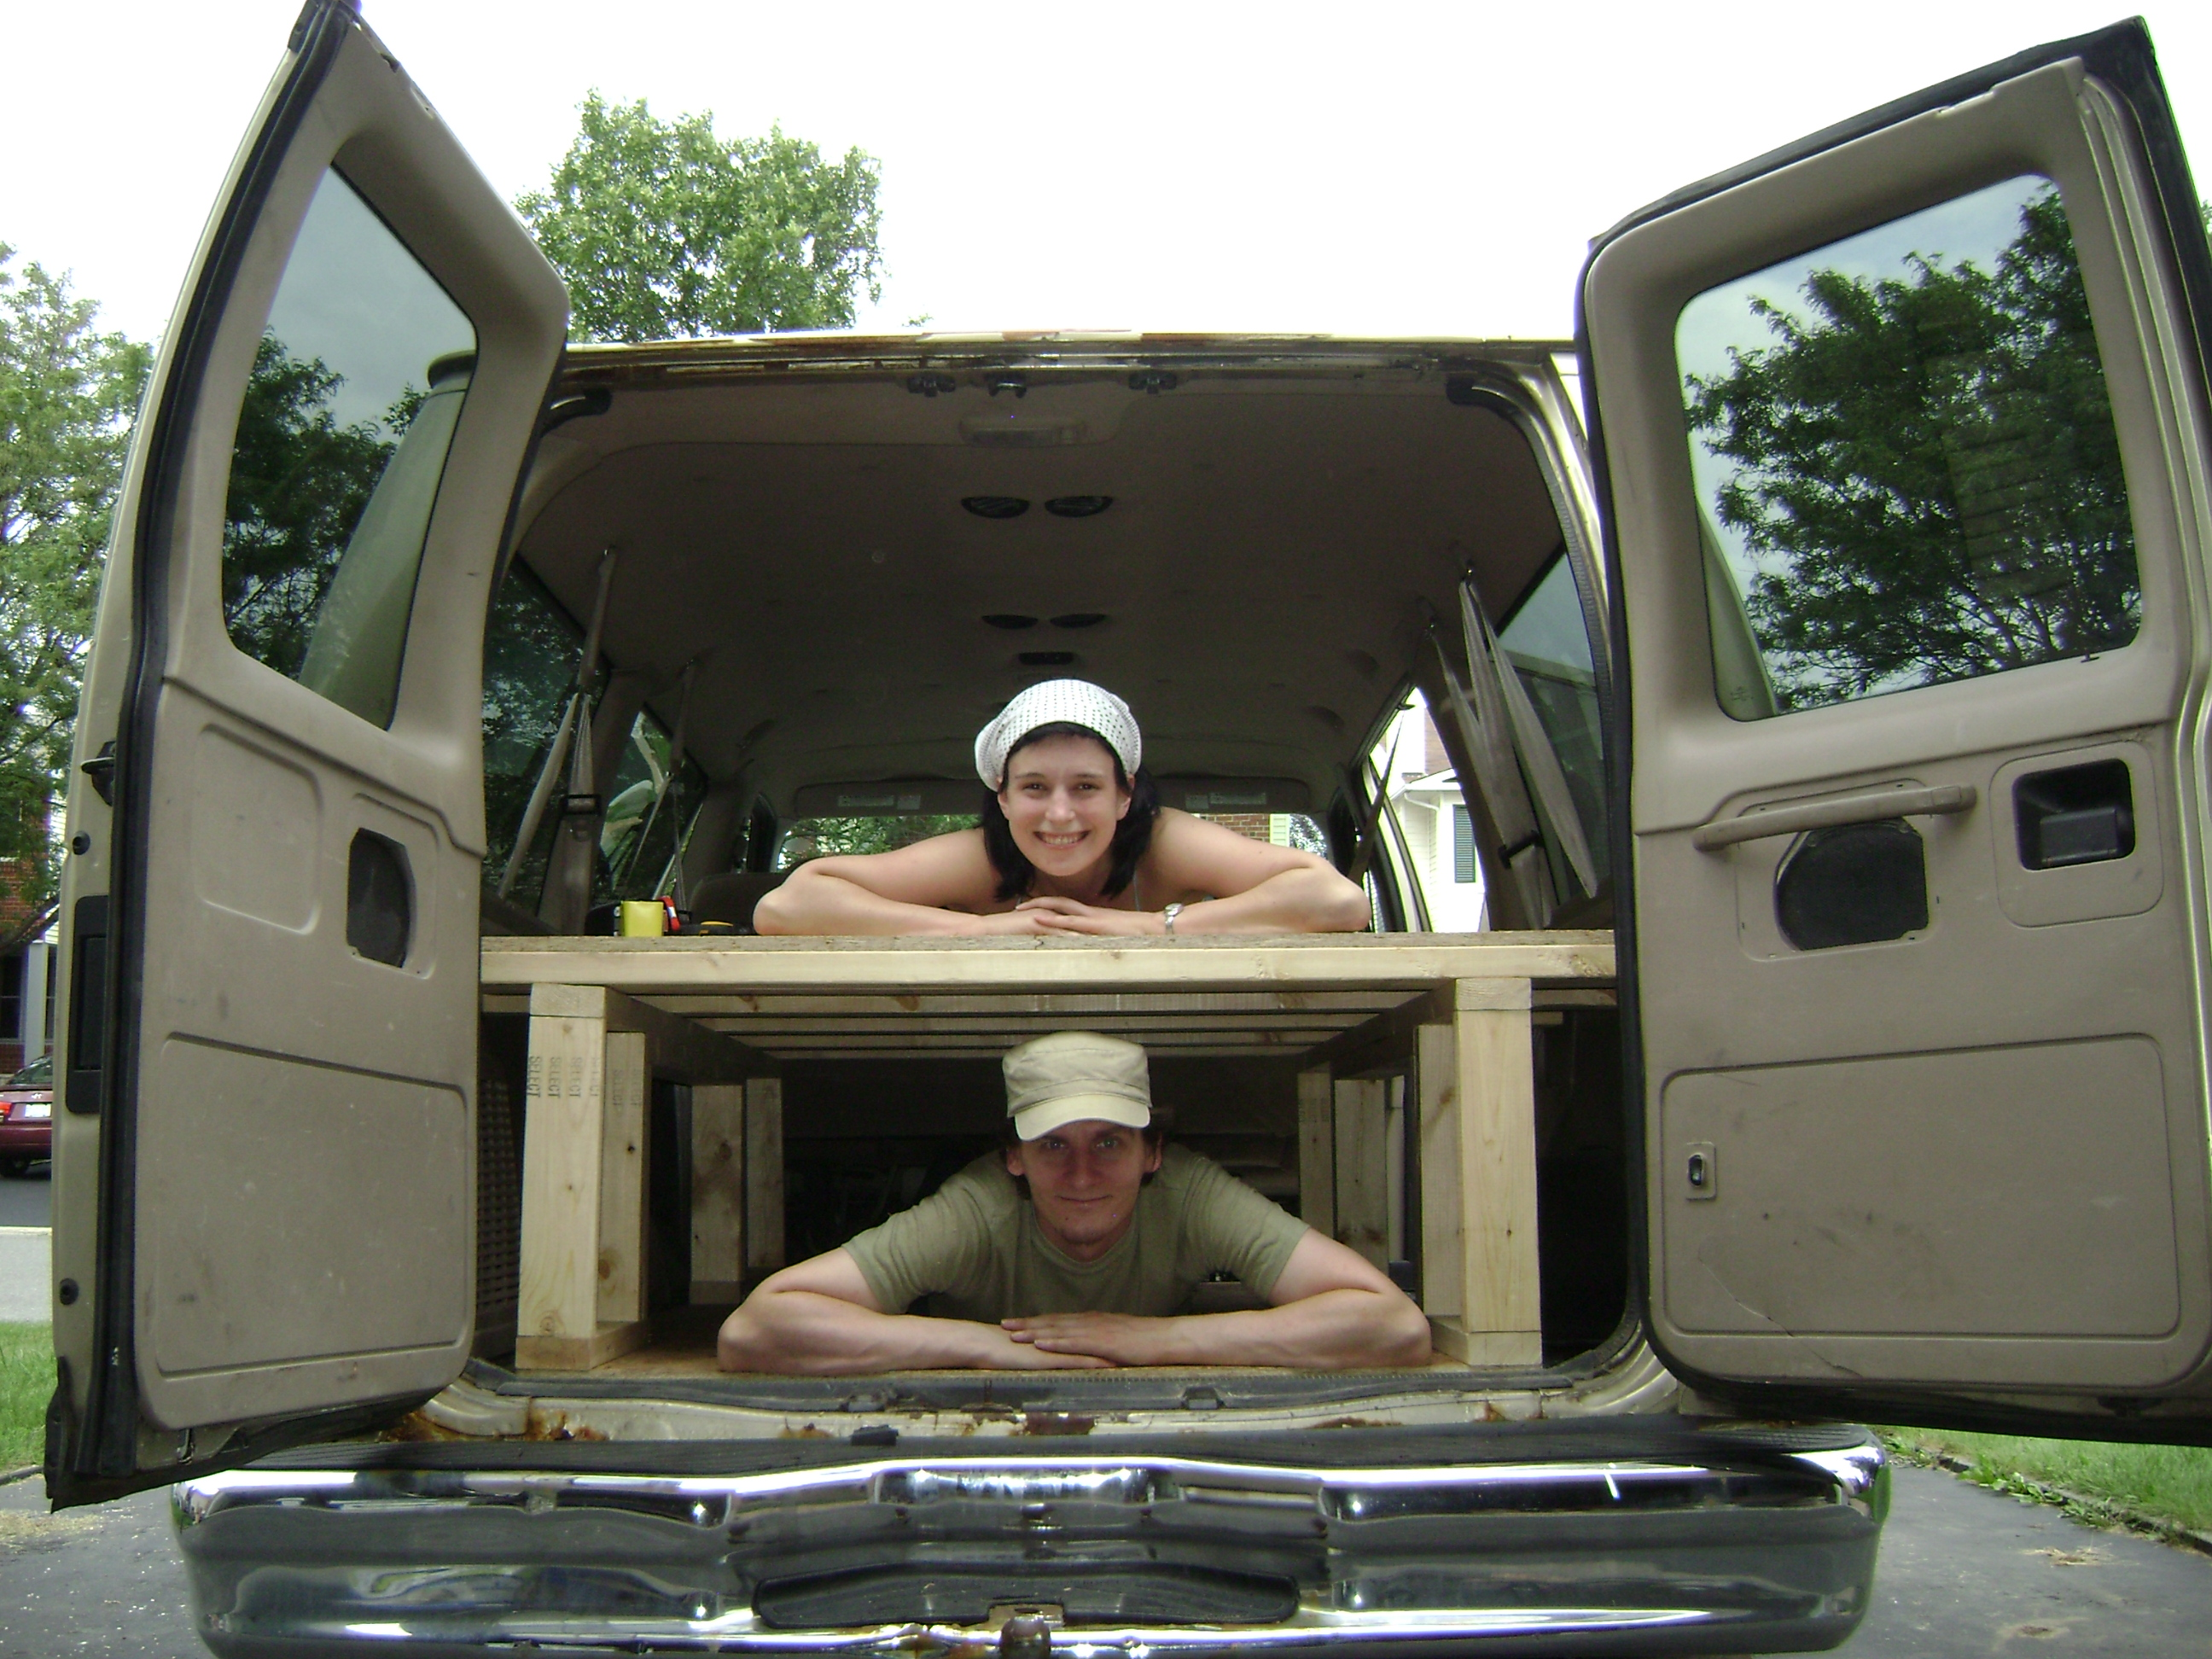 Build a Bed in the Back of Your Van: 4 Steps (with Pictures)